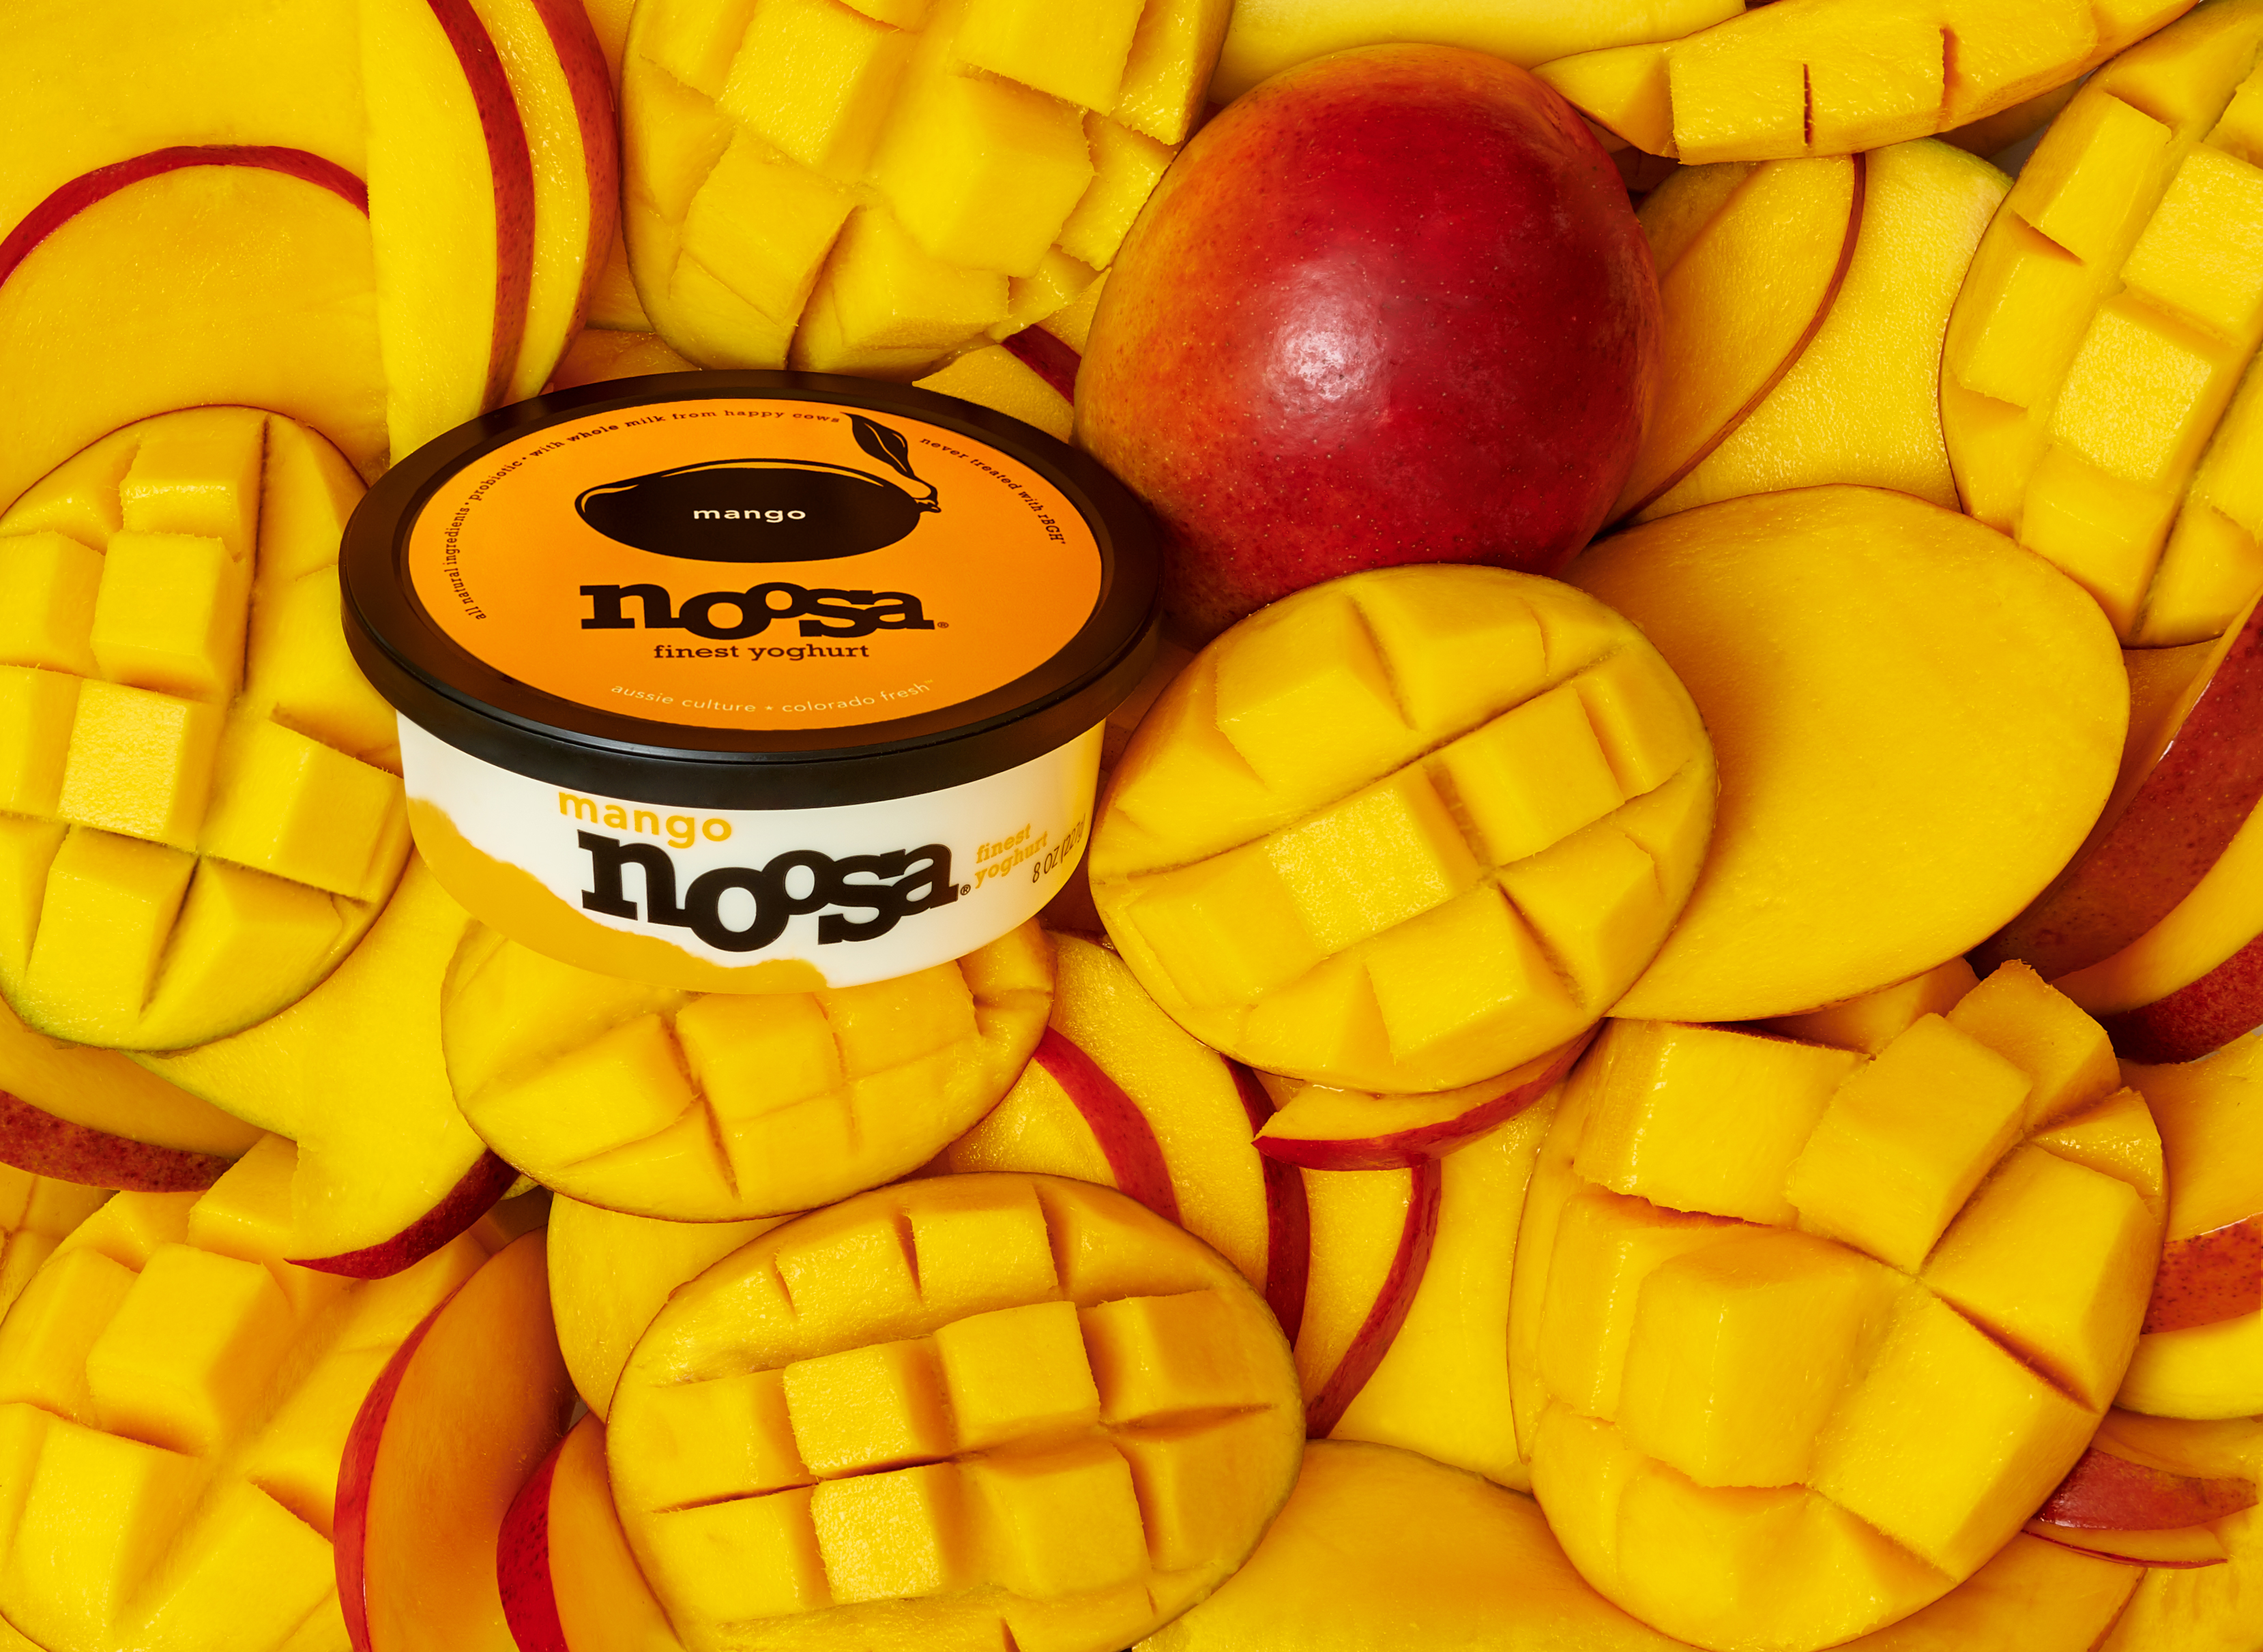 noosa_Mango_8oz_lifestyle_Nov20